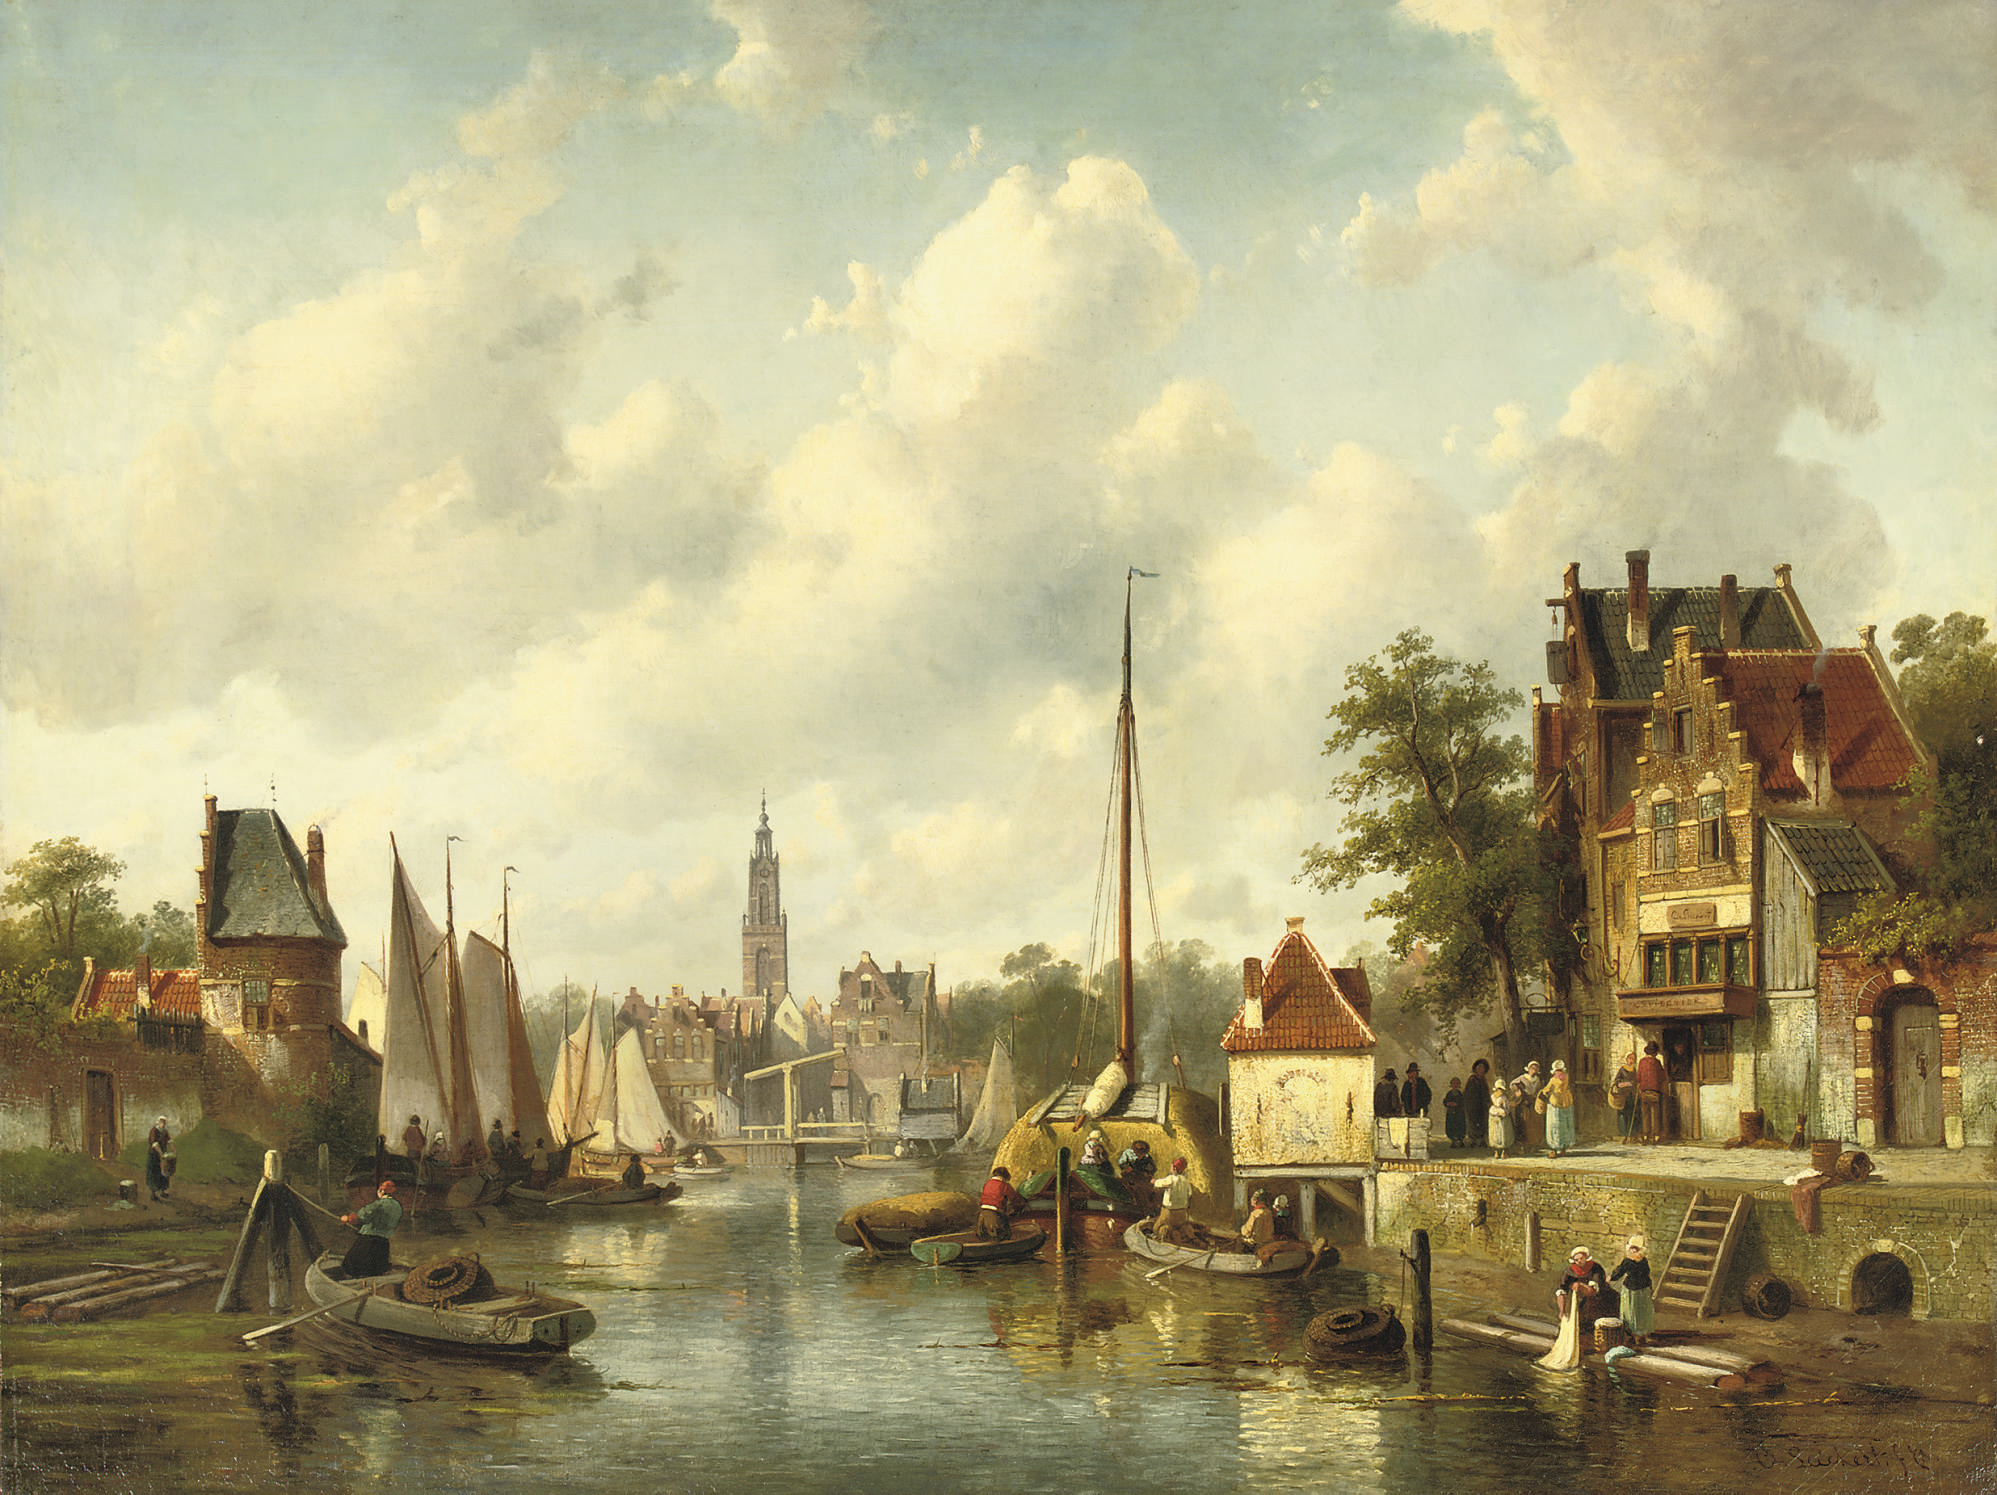 Activities on a busy canal in a sunlit Dutch town